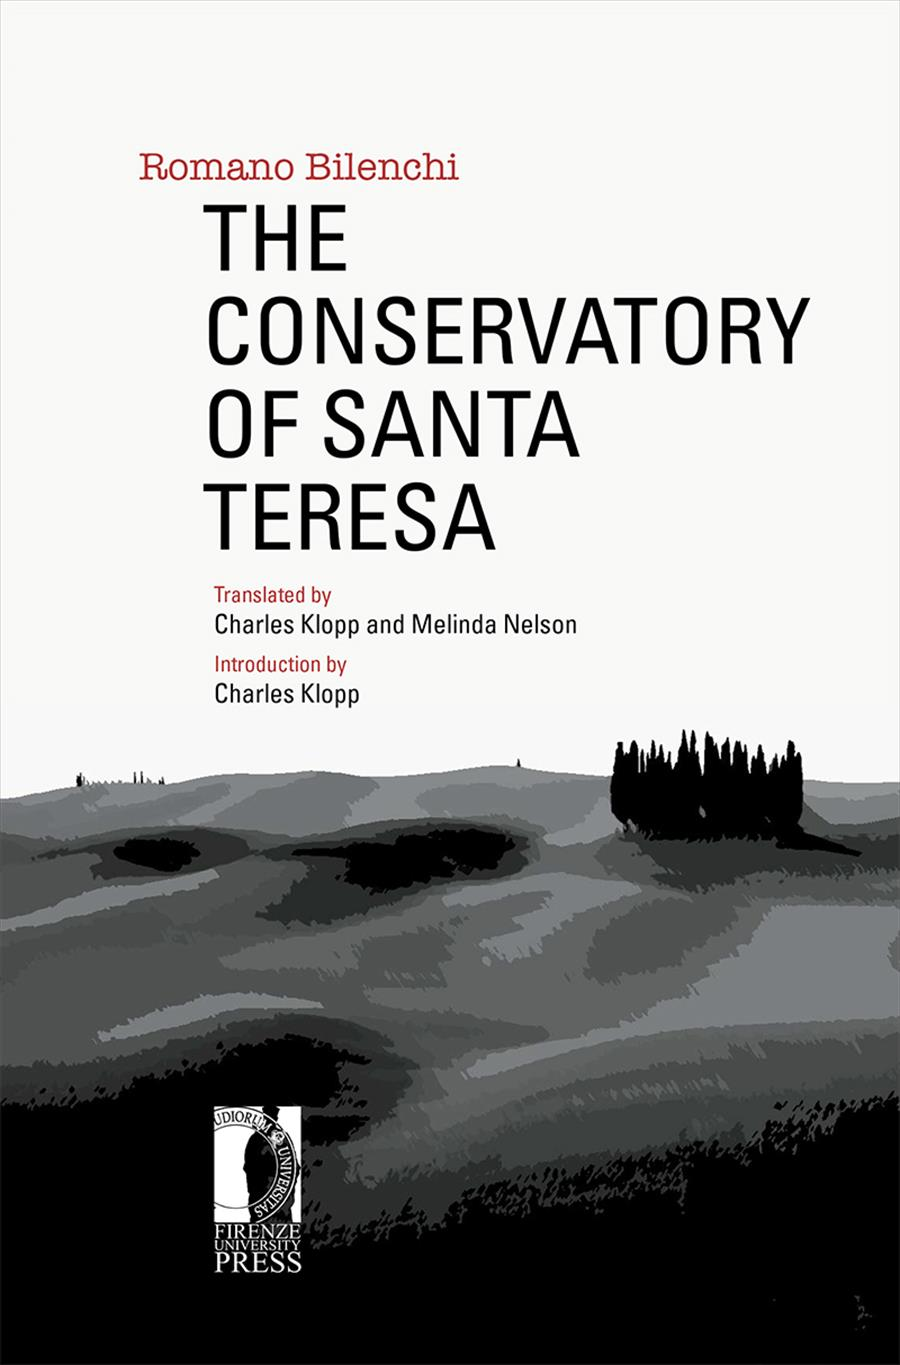 The Conservatory of Santa Teresa